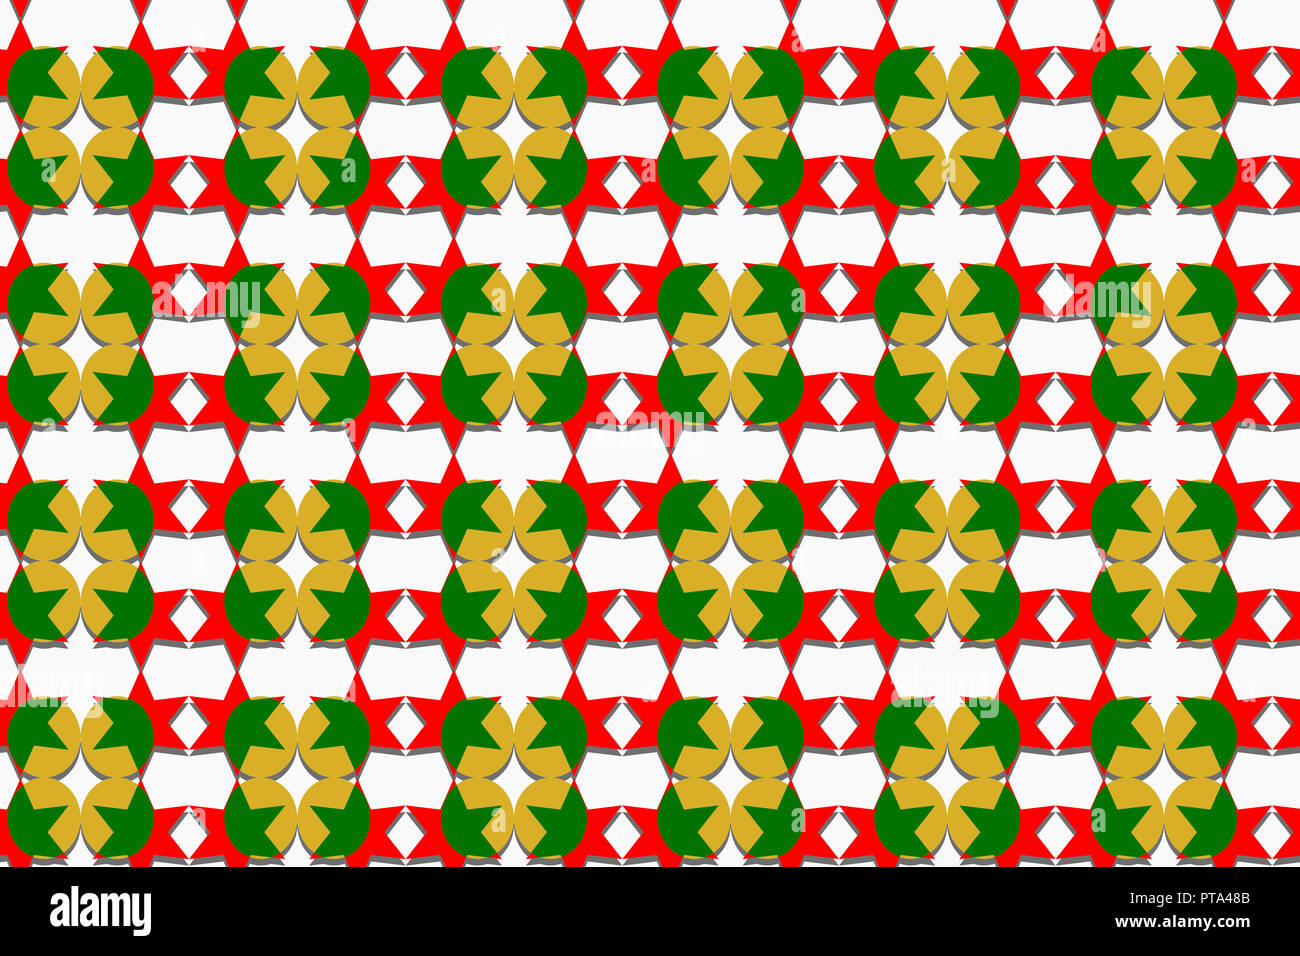 christmas theme seamless pattern of stars and round shapes in red green and gold colors with shadow white background paper art style - Why Are Red And Green Christmas Colors